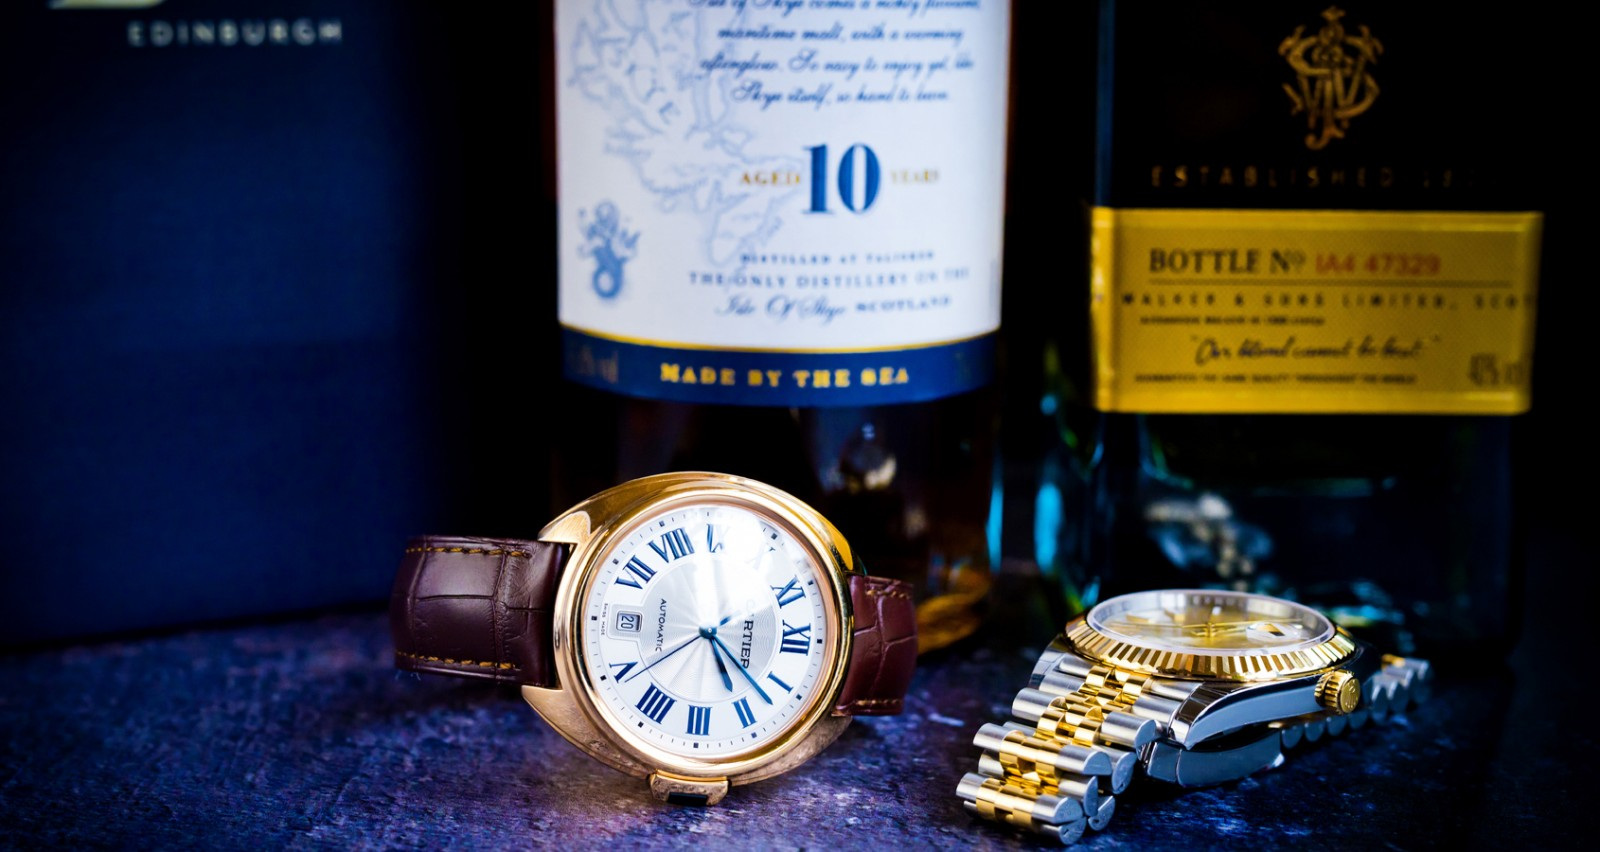 whisky watches com vatted forbes s bb the world this sites hd old glenlivet moinet with oldest watch louis wealth whiskey contains create rare solutions in robertanaas gold inside images